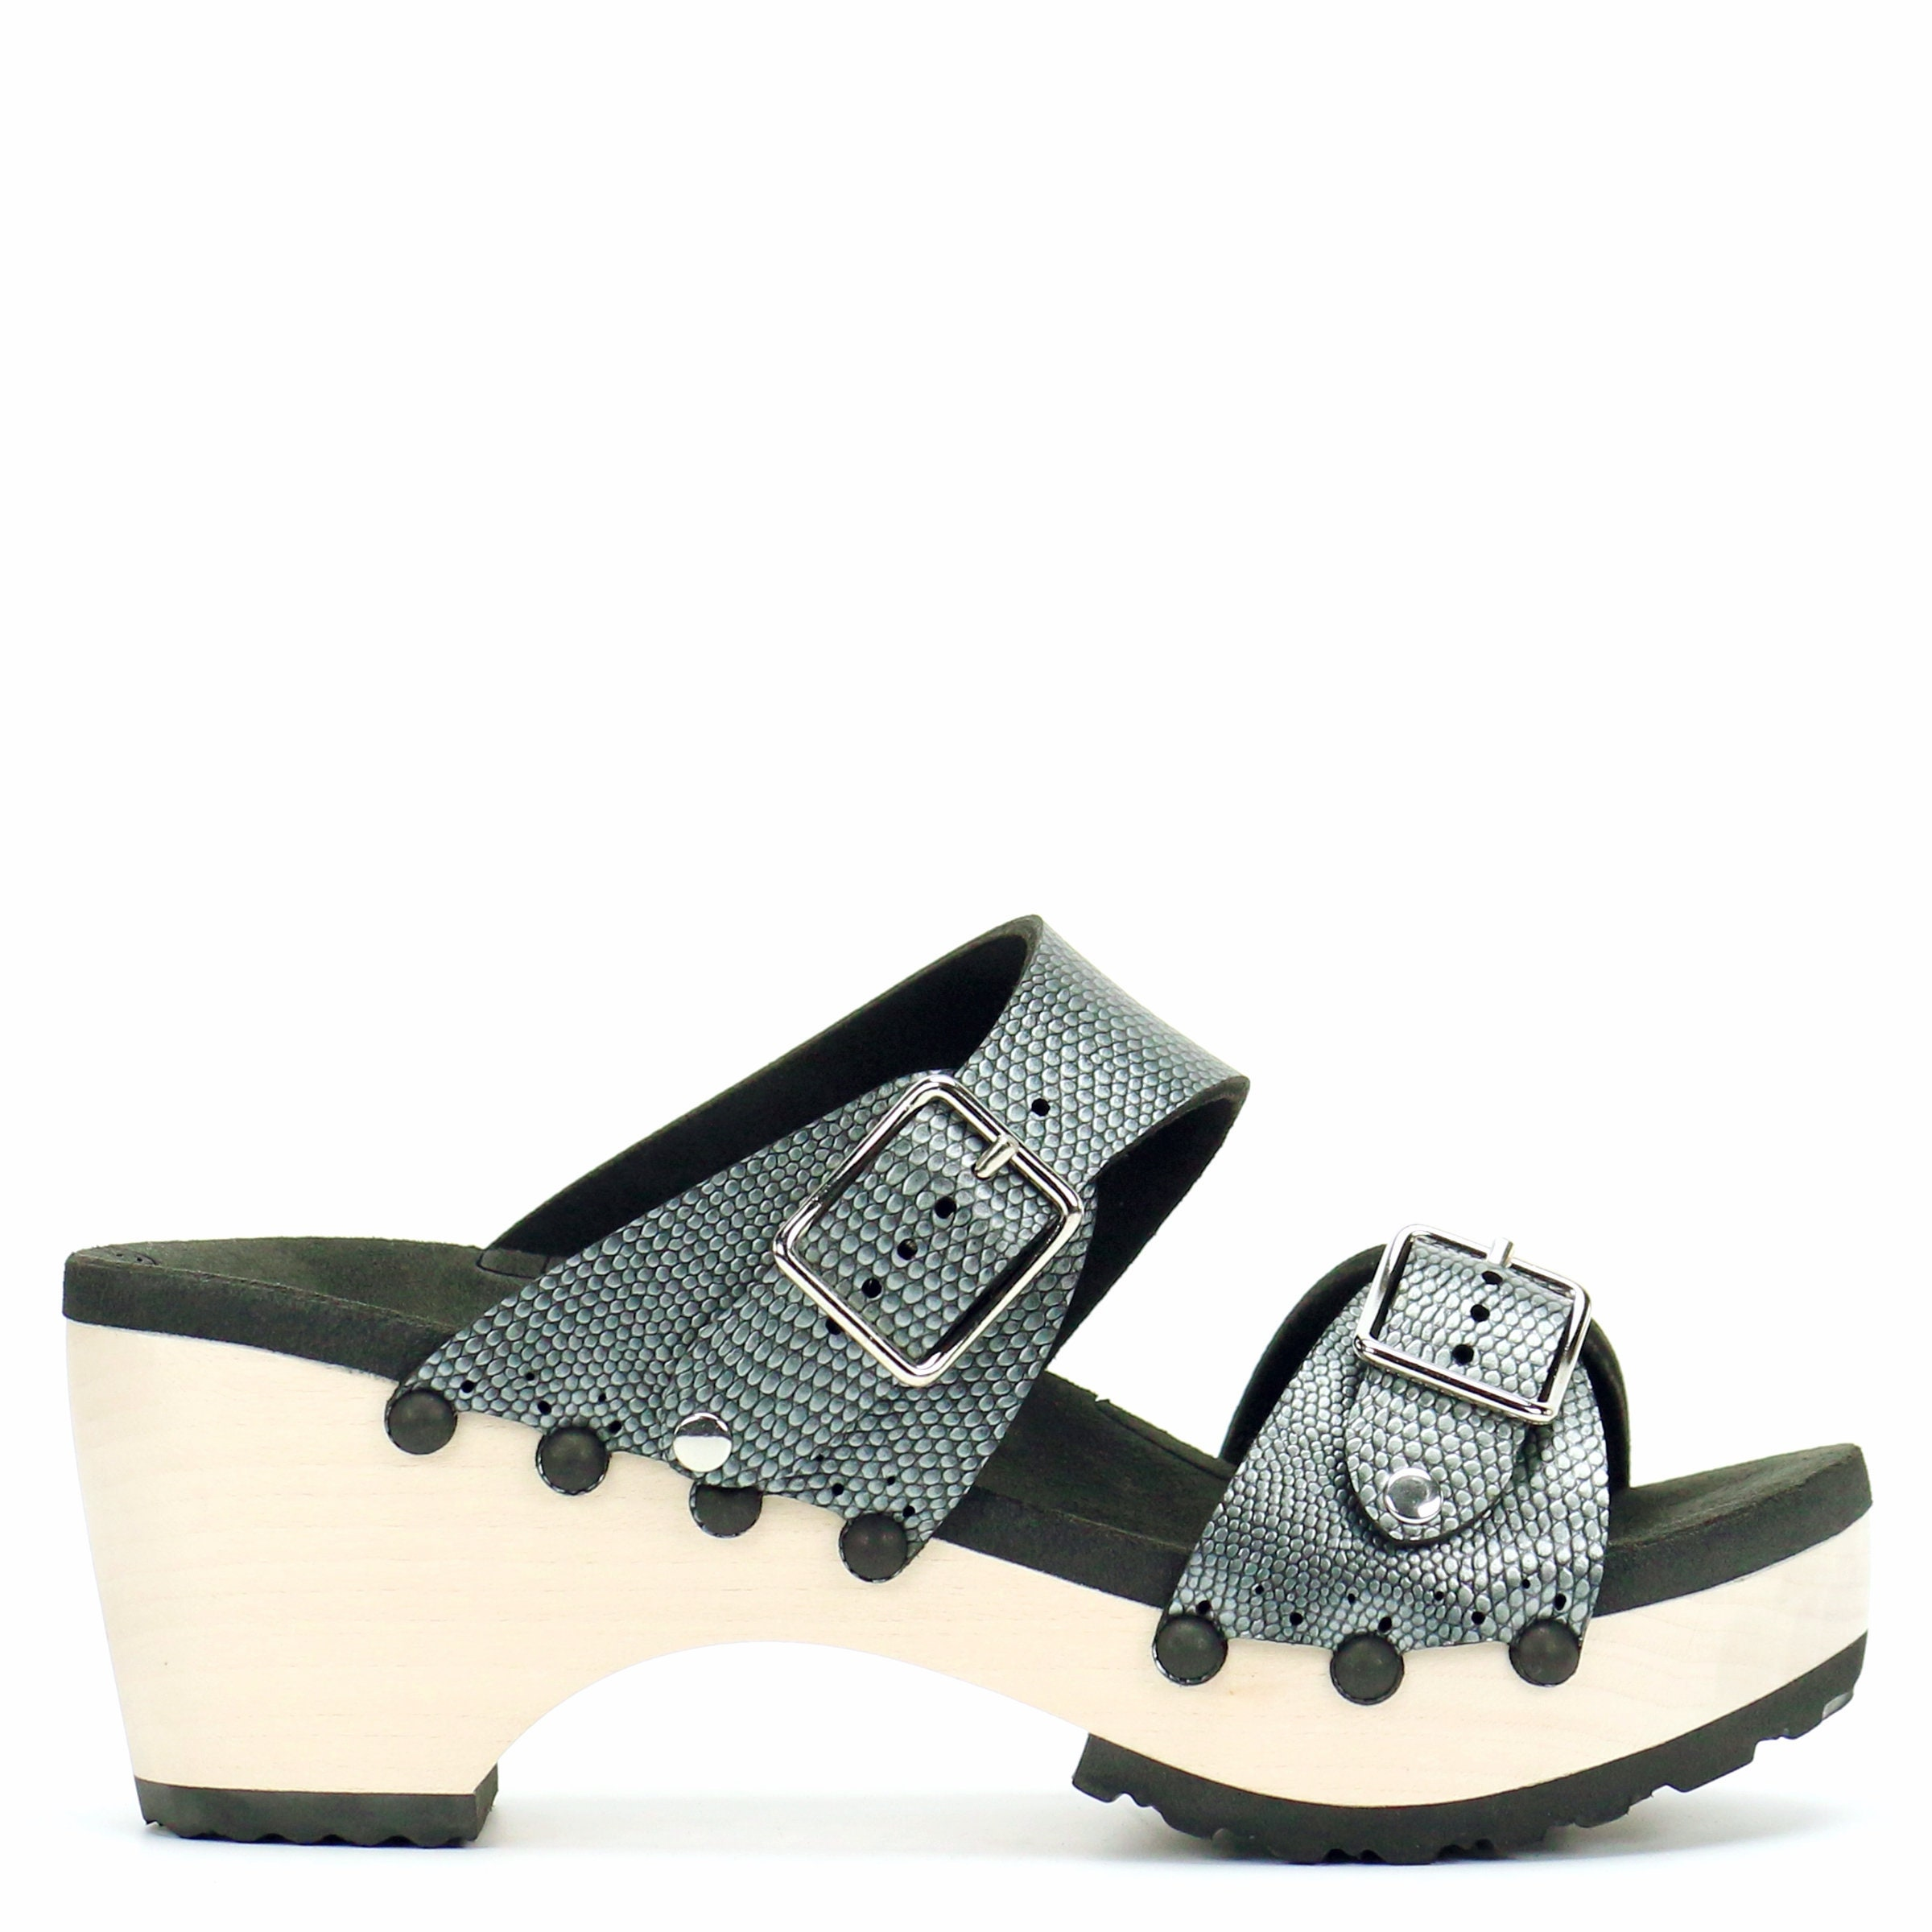 2a1a12c484611 Mid Clog Buckle Toe Mule in Pewter - Vegan Sandals - Made in USA by Mohop